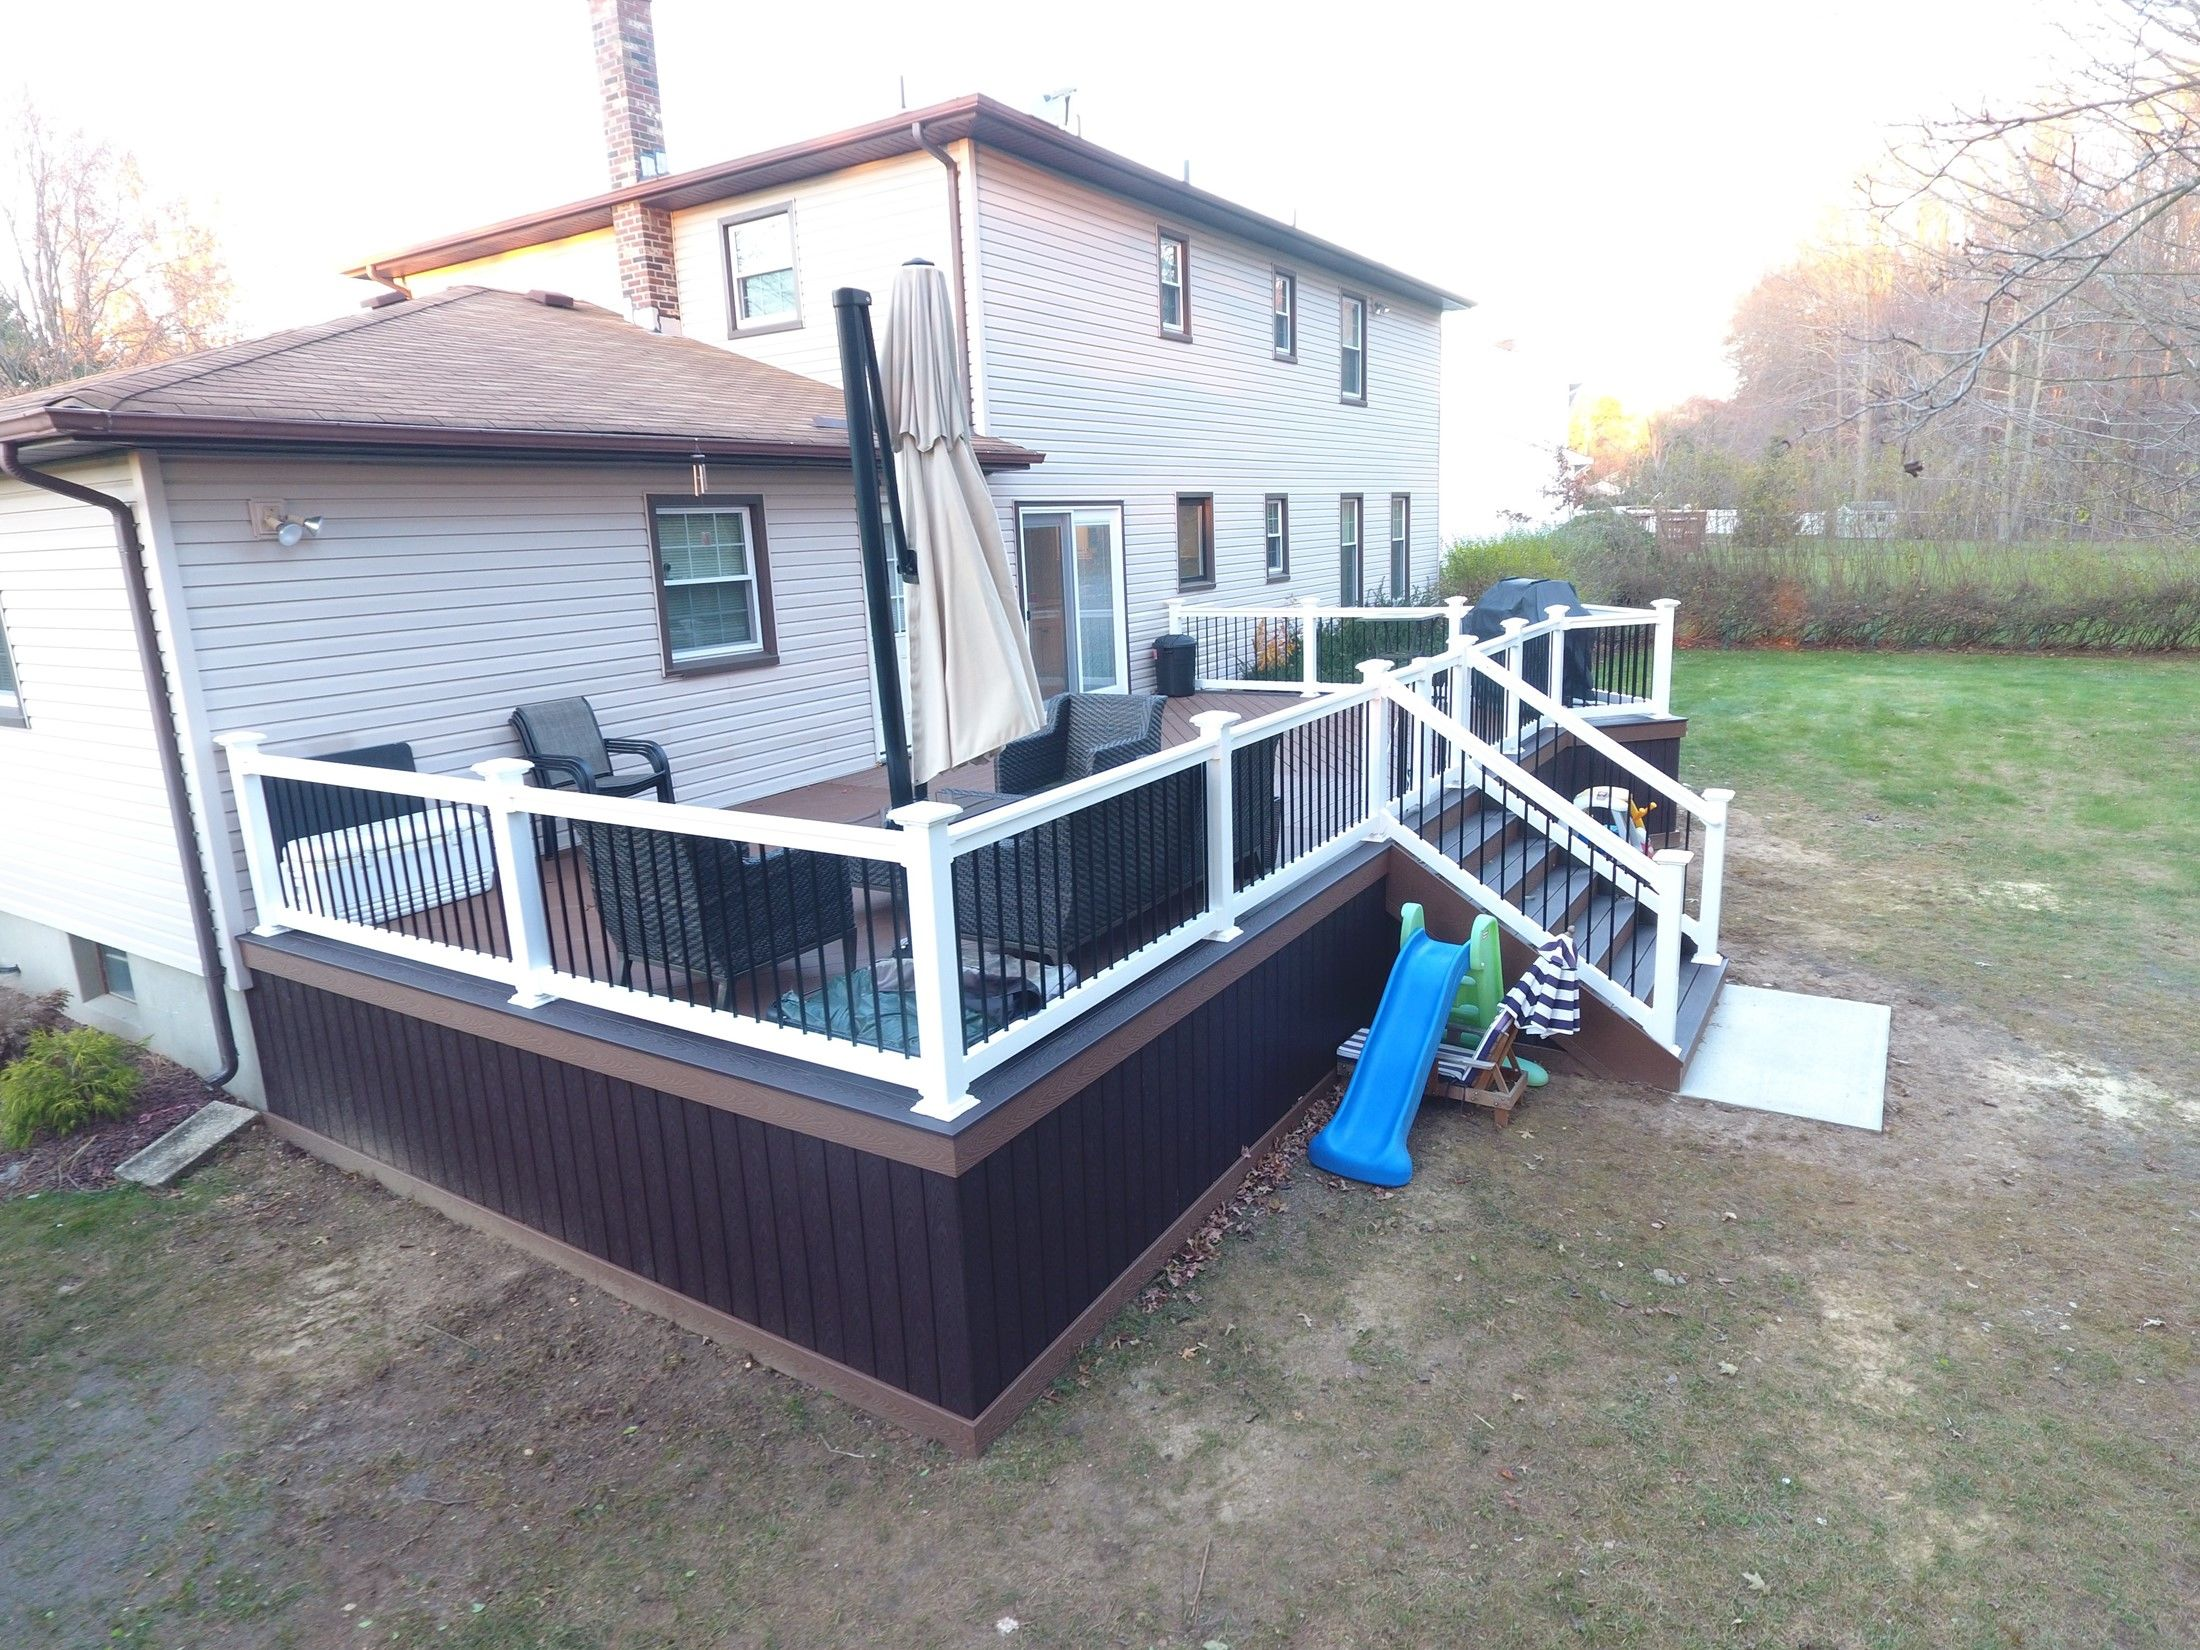 Who said rectangular decks don't look fancy? :) - Picture 7548